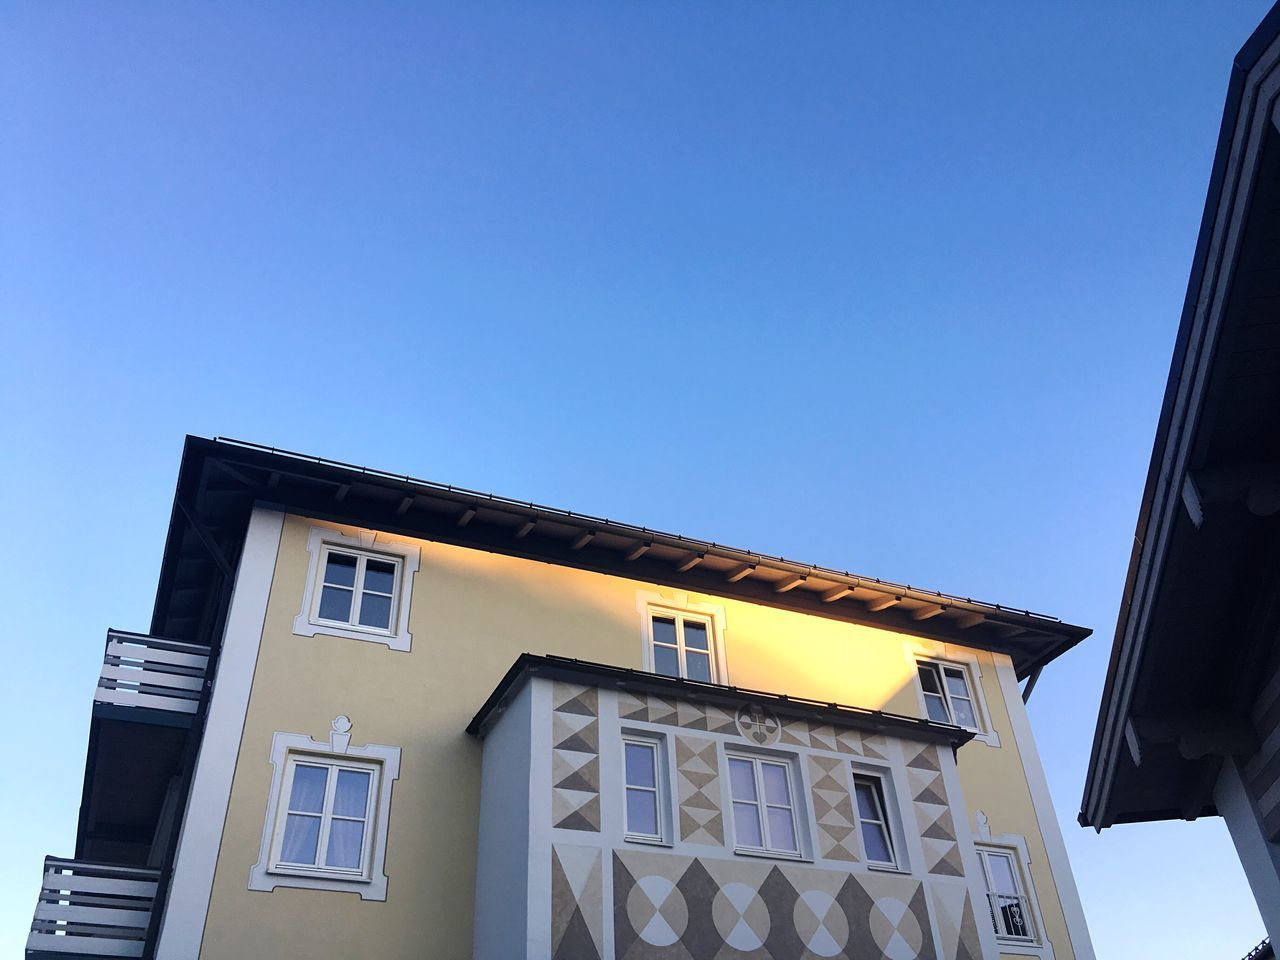 Bavarian Architecture Bad Tölz Bavarian City Bavarian Cityscapes Cityscapes Architecture Architecture_collection Architectural Feature Architecture Bavaria No People Built Structure House Morning (null) Good Morning Morning Light Morning Sunlight Bavarian Tradition